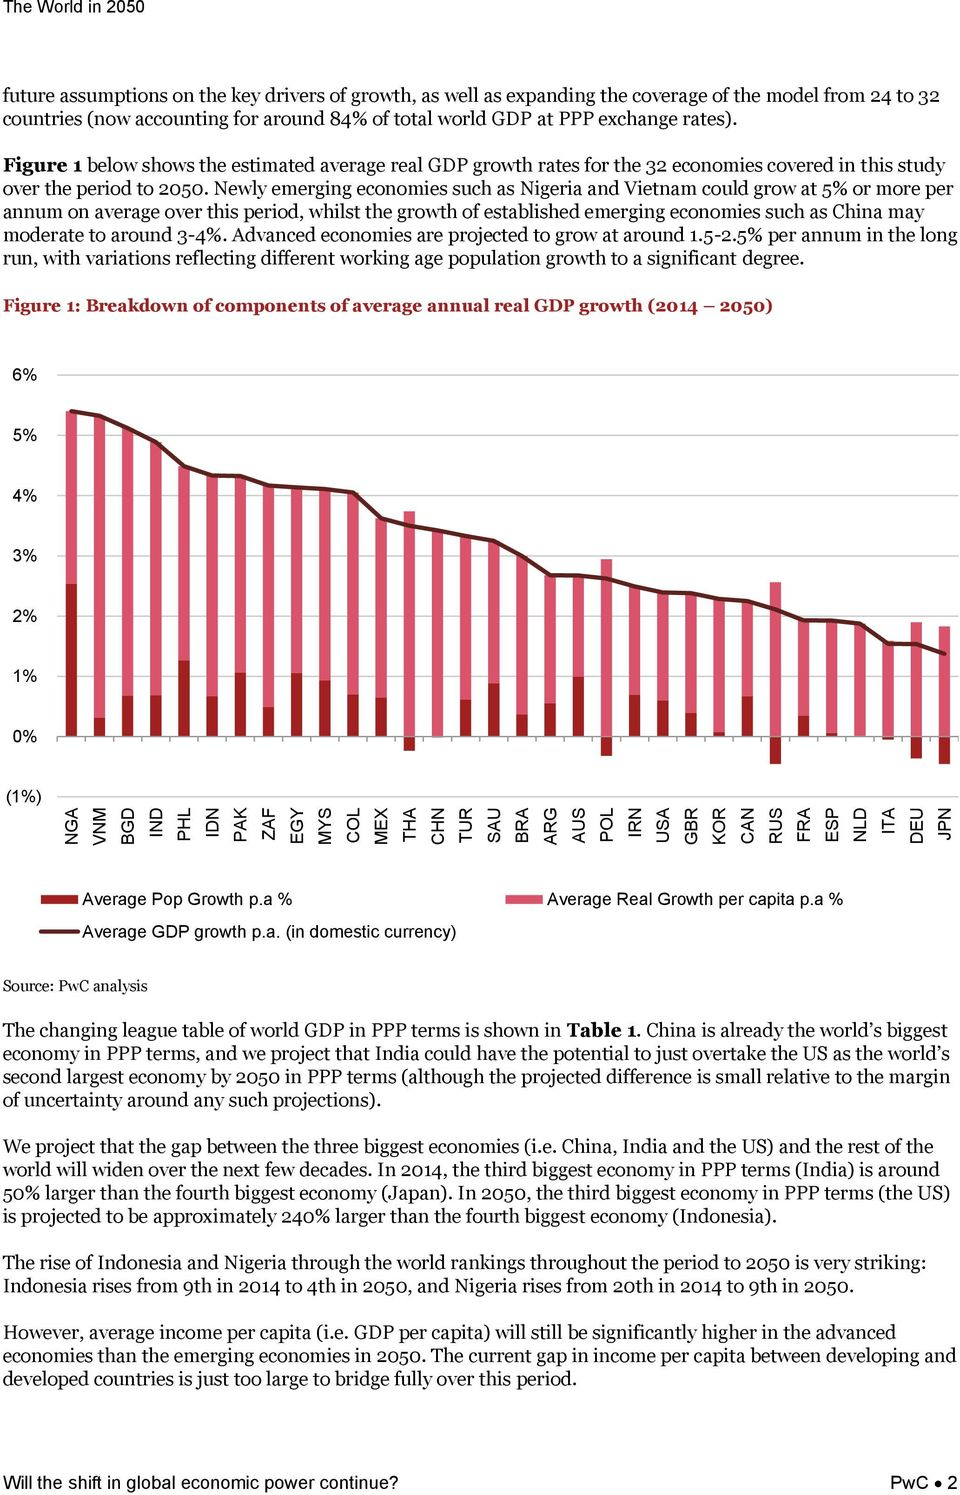 Figure 1 below shows the estimated average real GDP growth rates for the 32 economies covered in this study over the period to 2050.